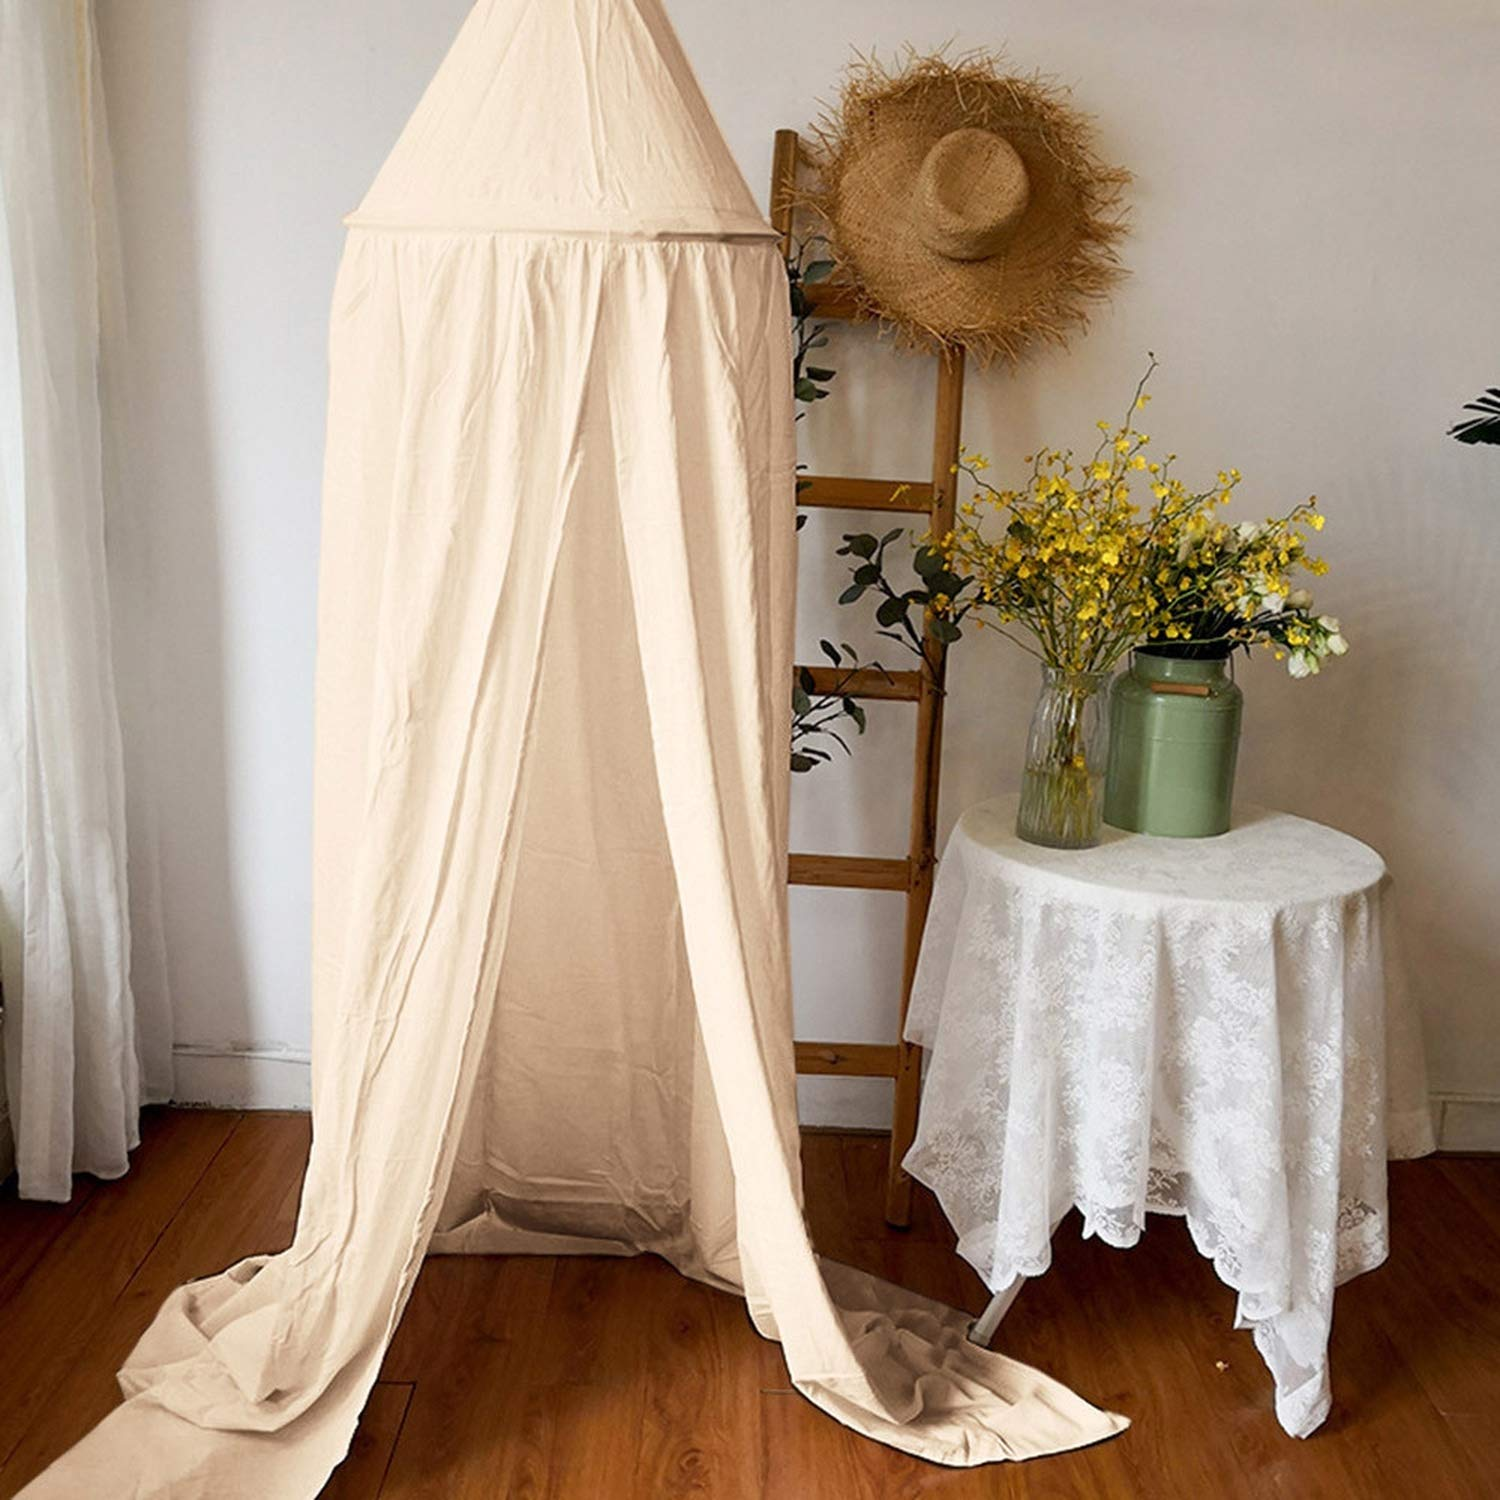 Baby Bed Canopy Bedcover Round Mosquito Net Curtain Modern Simple Home Textile Living New Patterns,WH by Alovelycloud bed curtain (Image #4)